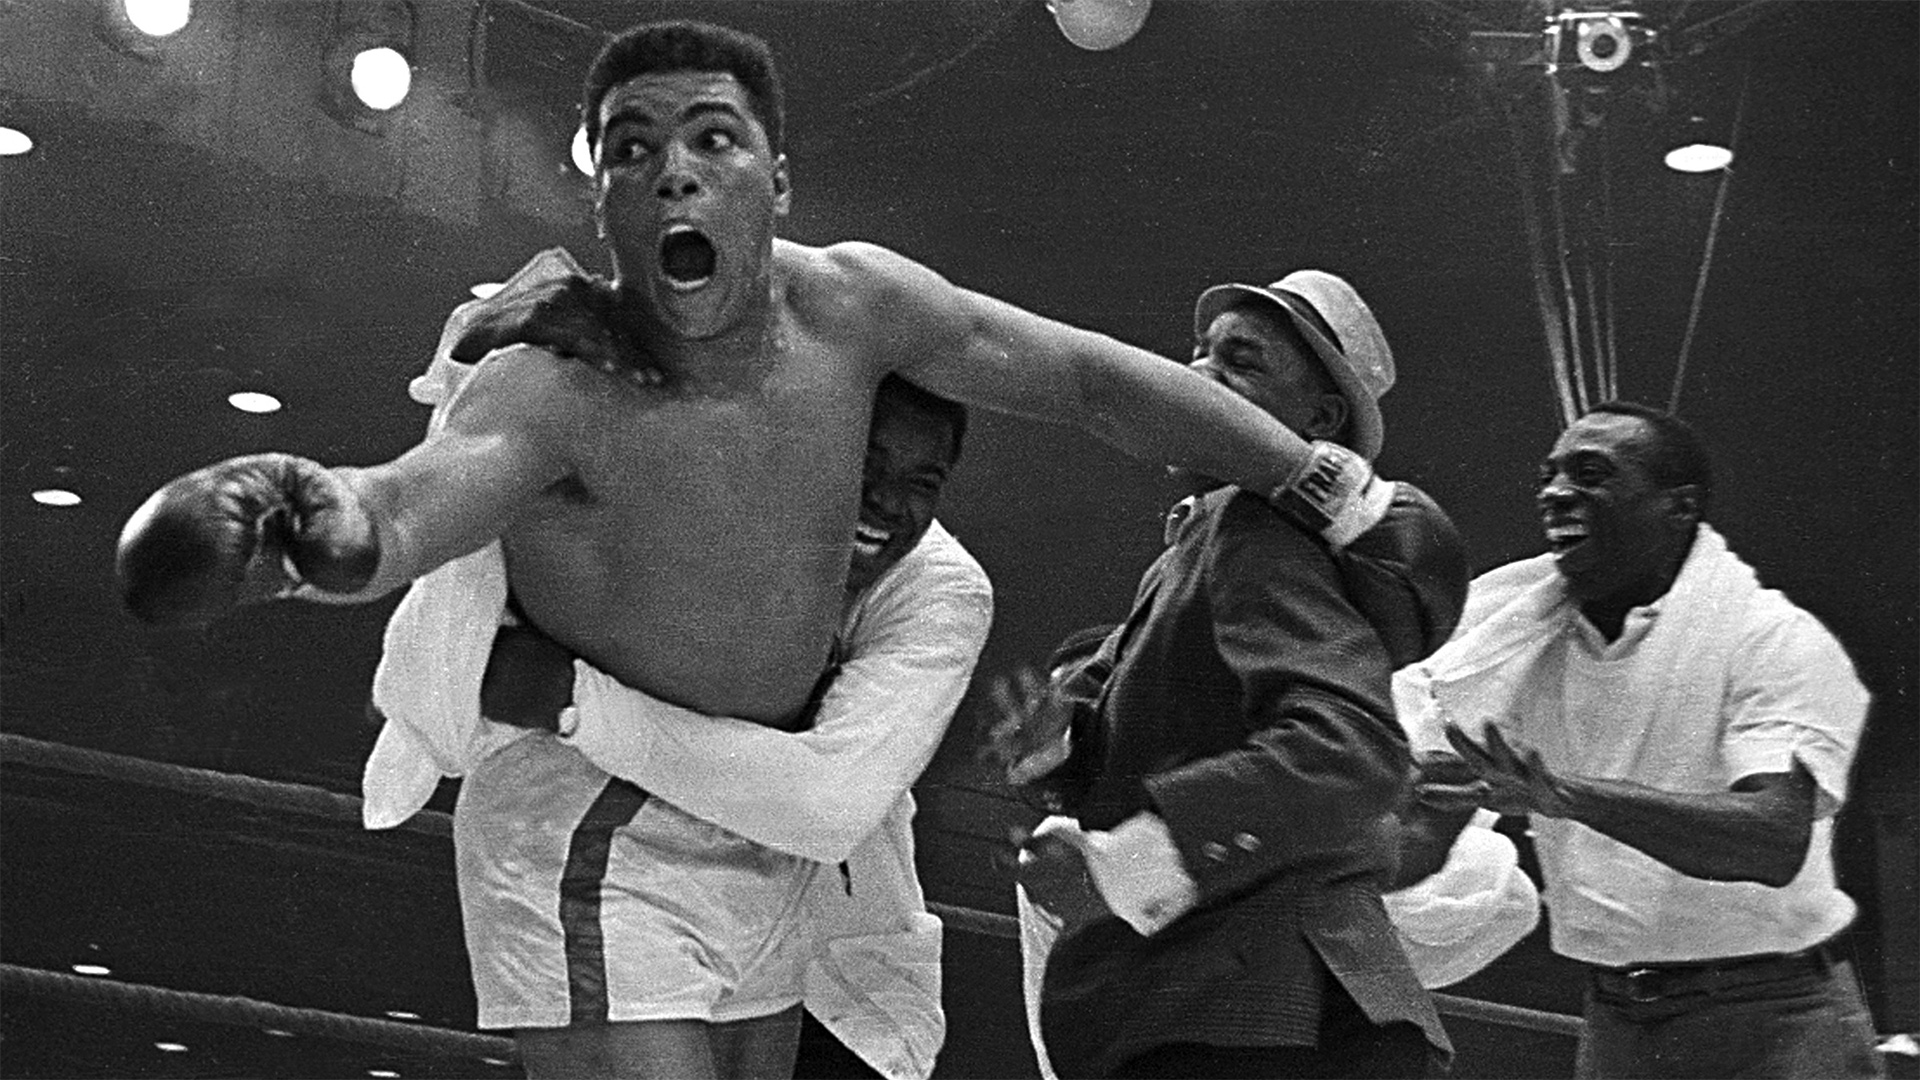 Cassius Clay's handlers hold him back after he is announced the new heavyweight champion of the world after knocking out Sonny Liston. Bundini Brown embraces Ali. Luis Sarria runs to the group in a smile on the right. Miami, Florida. February 25, 1965.